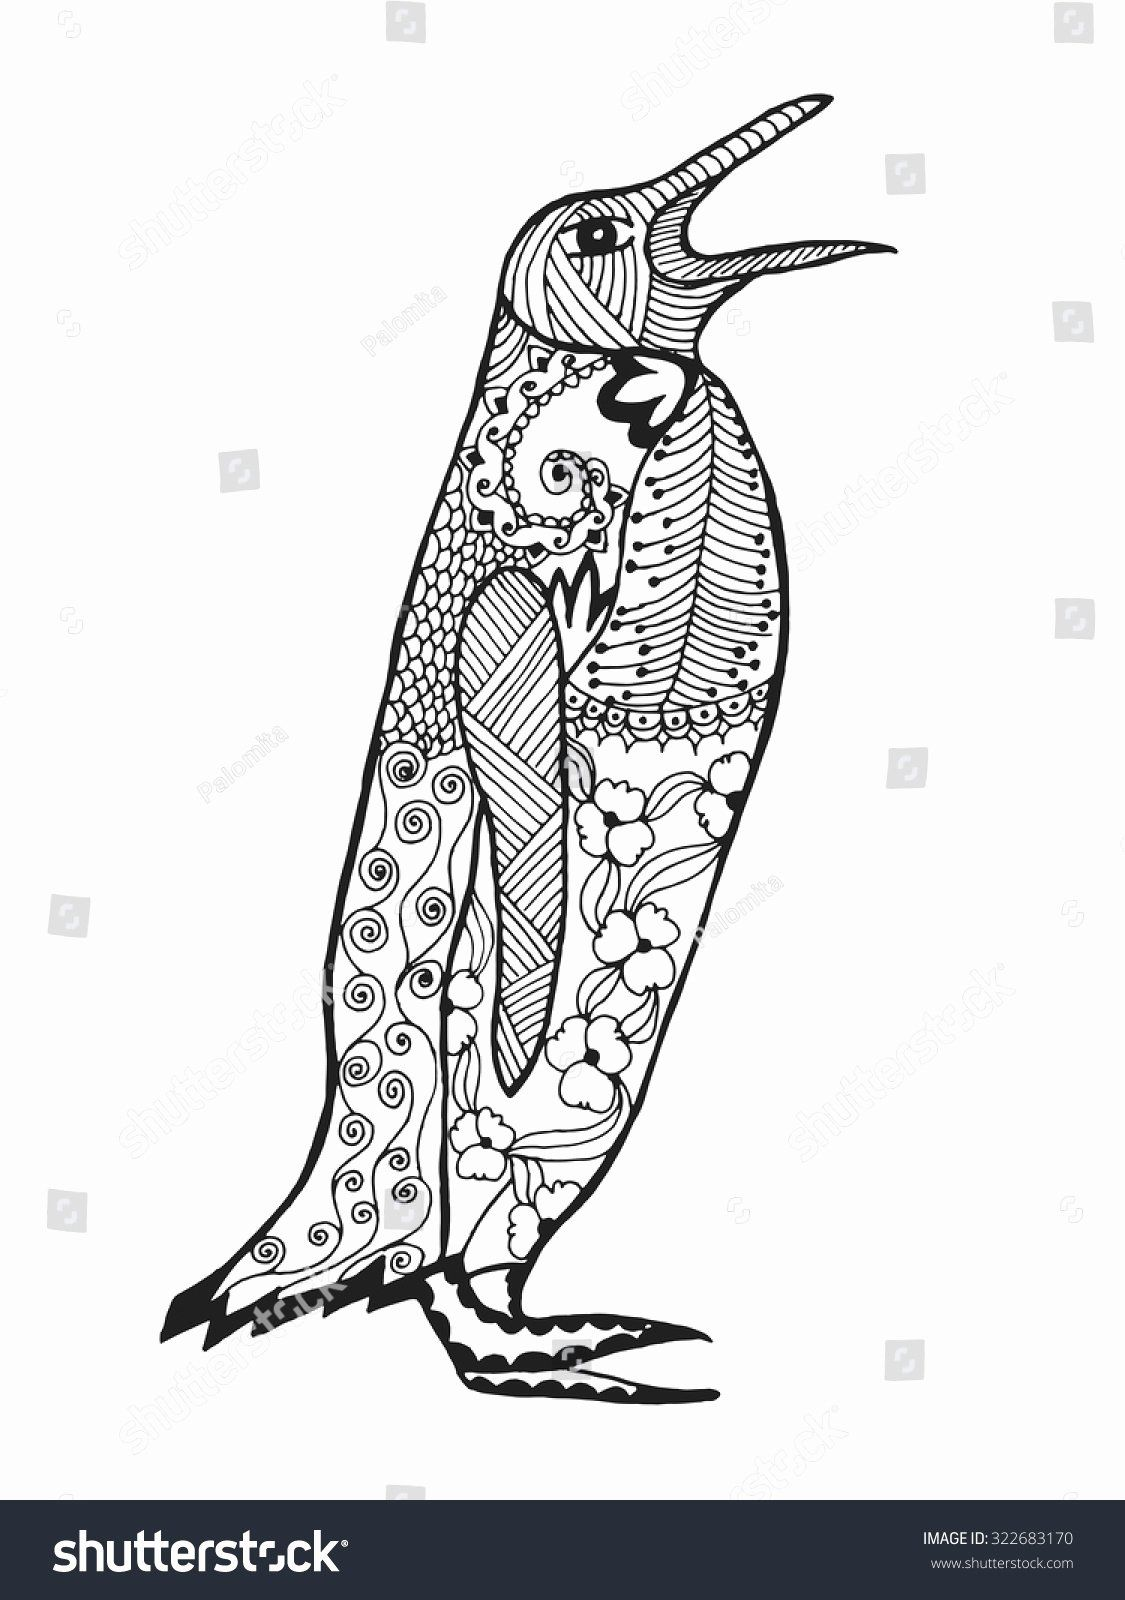 Adult Coloring Pages Penguin in 2020 Penguin coloring